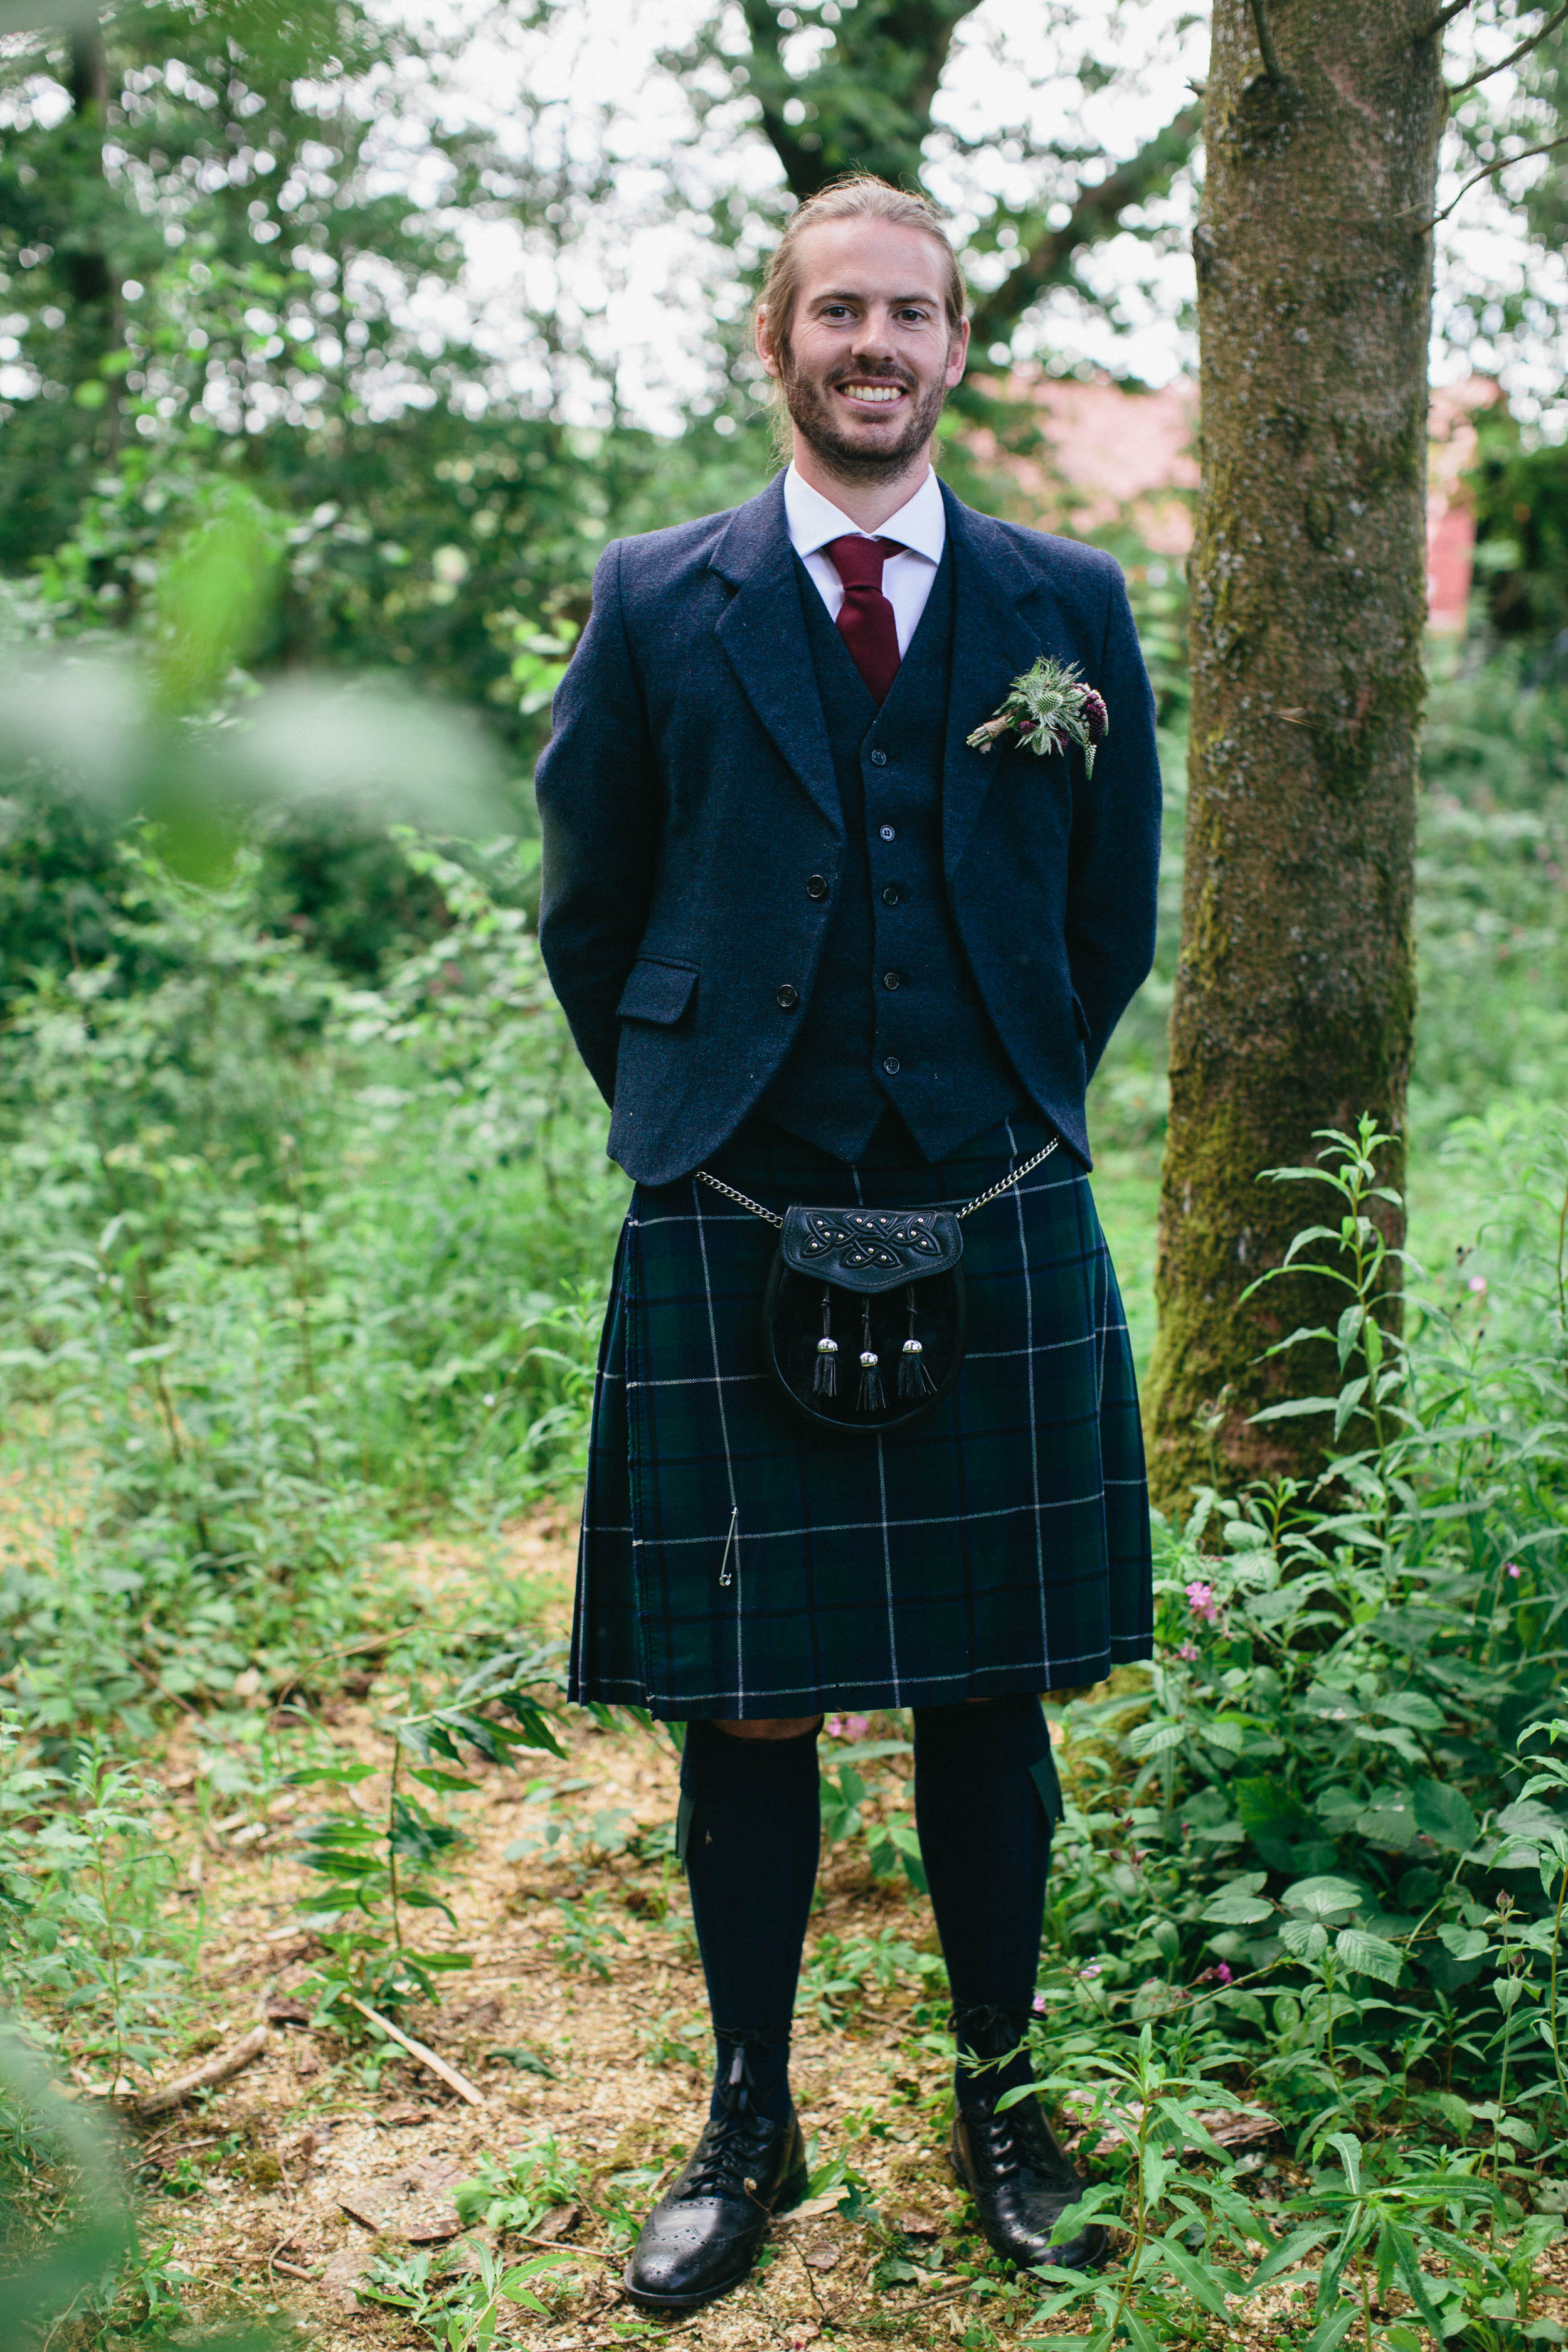 Alternative Quirky Wedding Photographer Scotland Borders Edinburgh 083.jpg